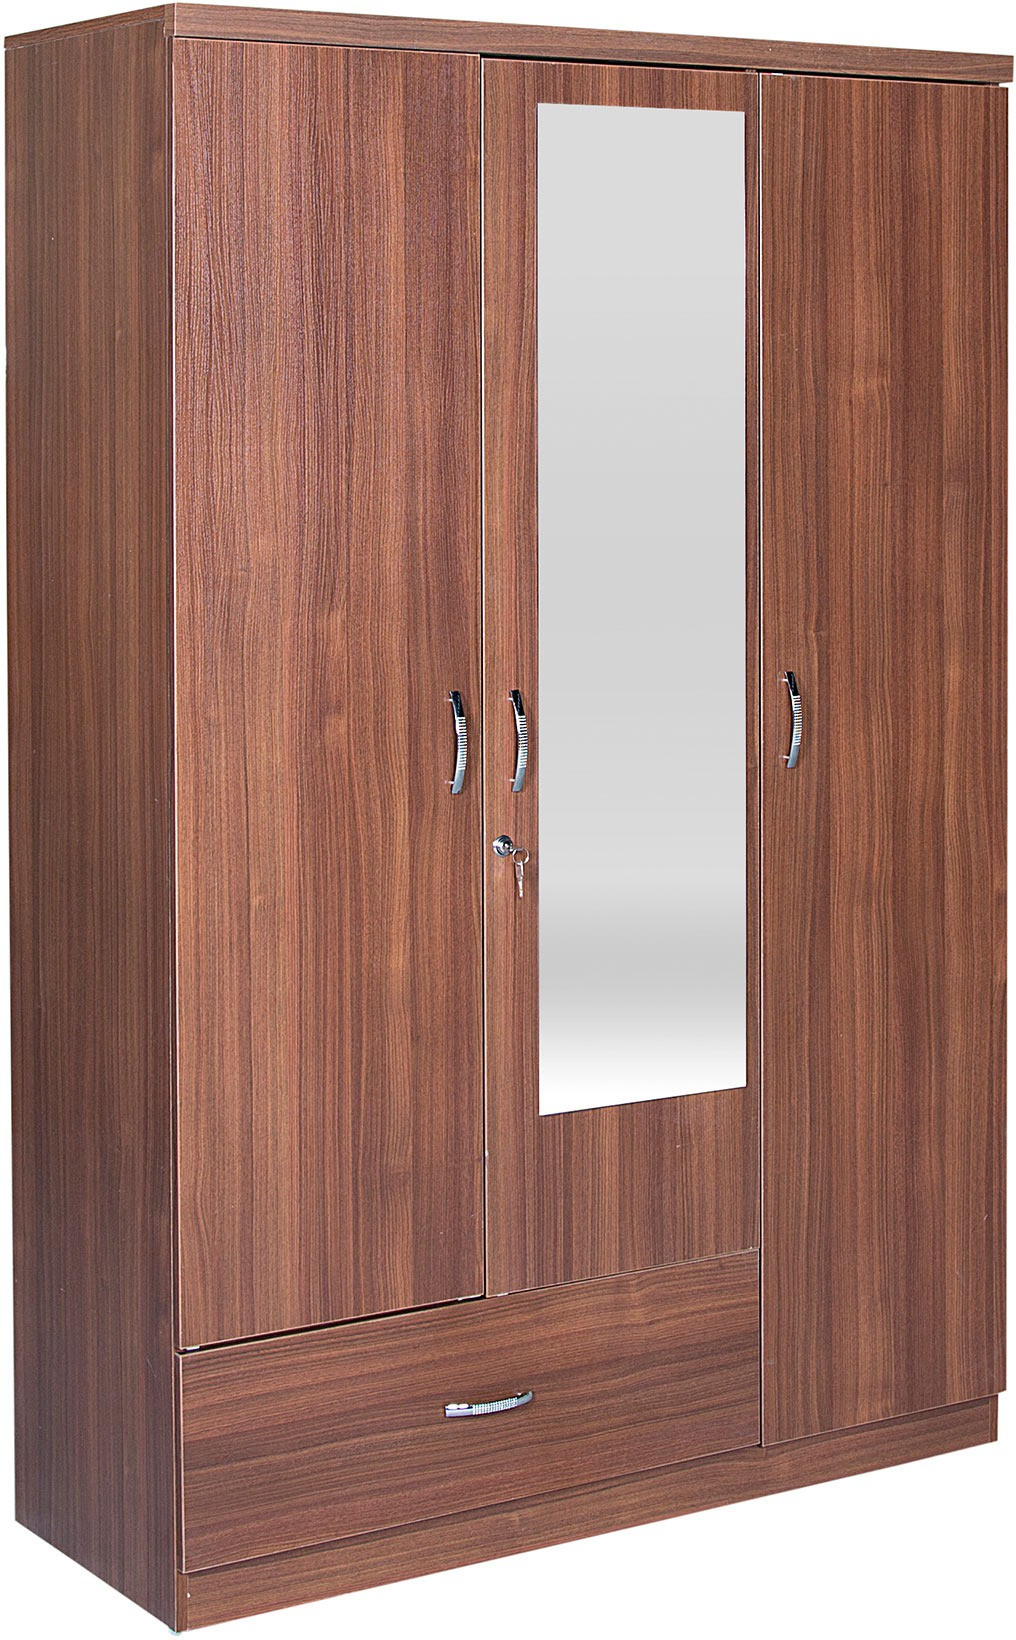 Hometown Ultima 3 Door With Mirror Rwlnt Engineered Wood Almirah available at Flipkart for Rs.13410